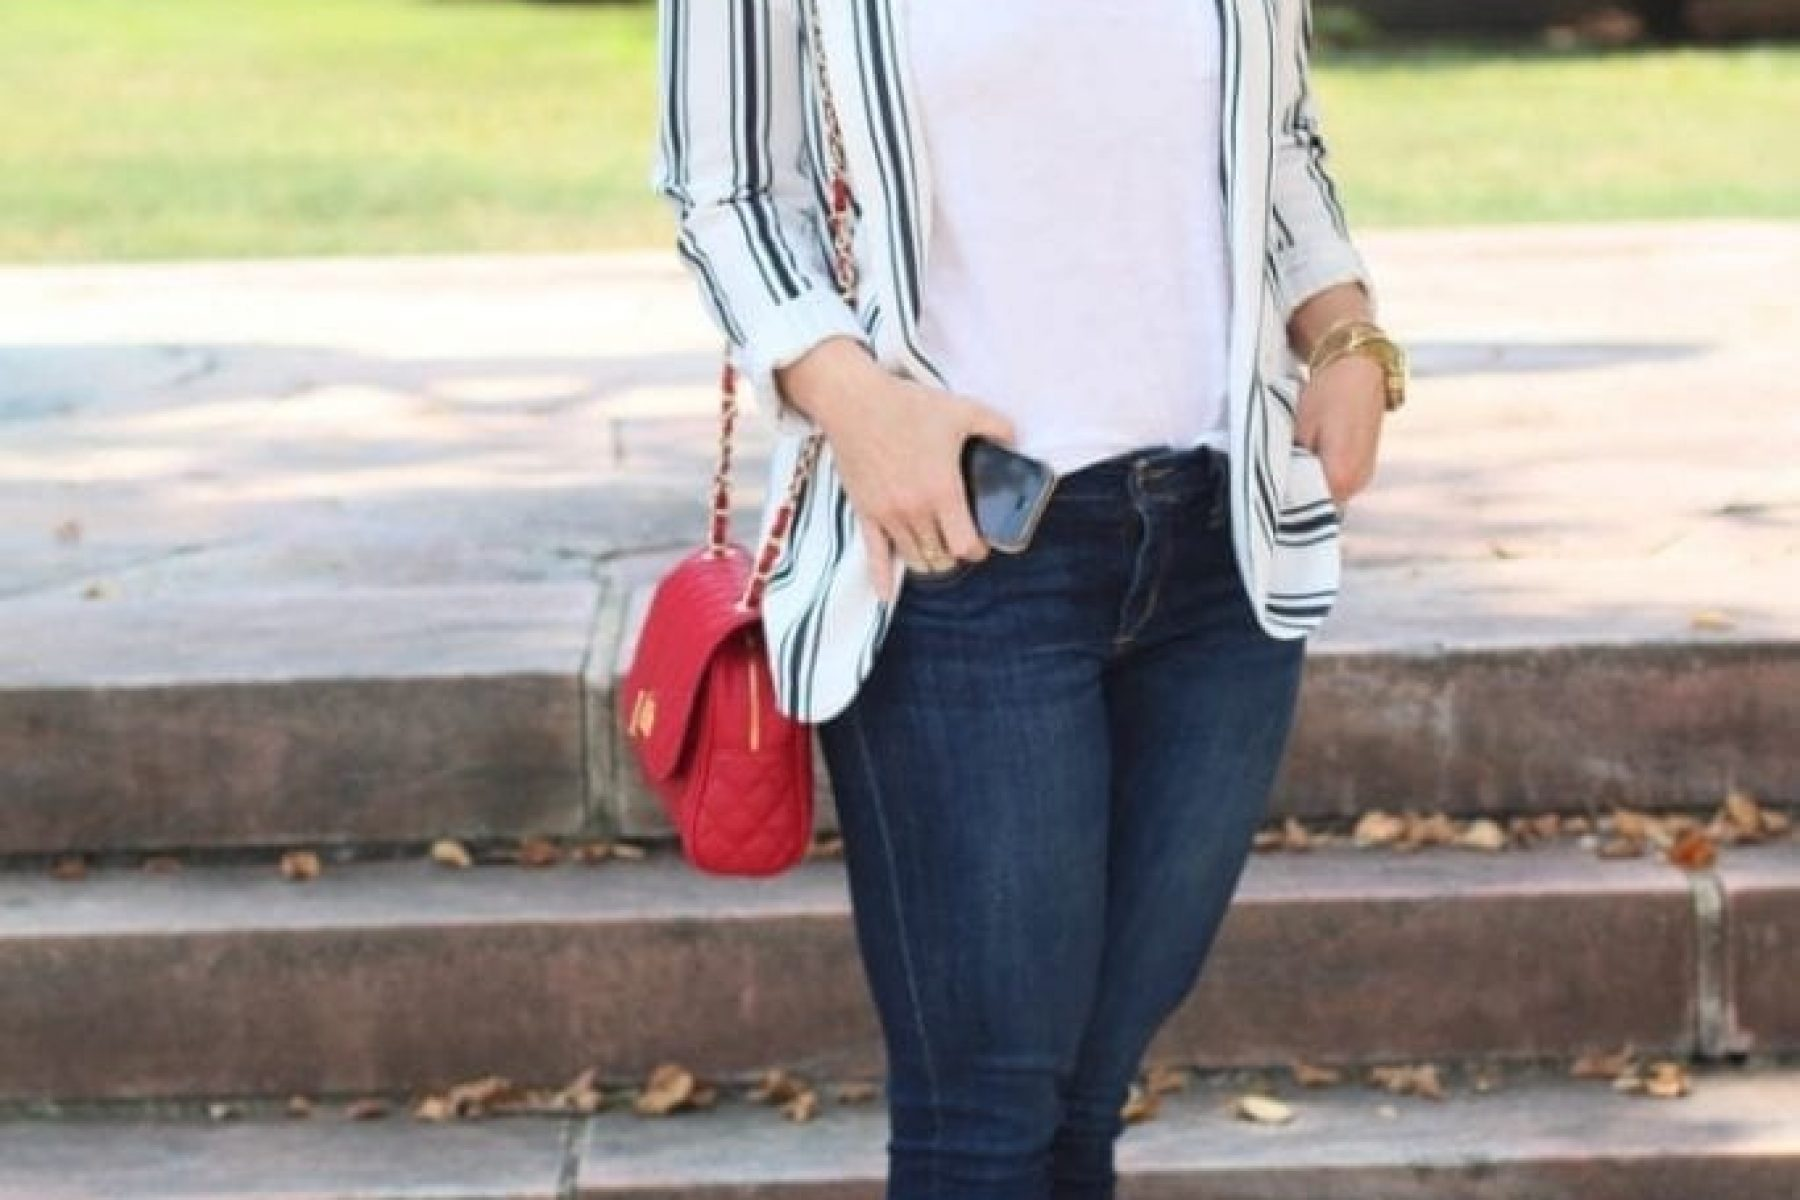 Back to Campus with my Favorite Denim…